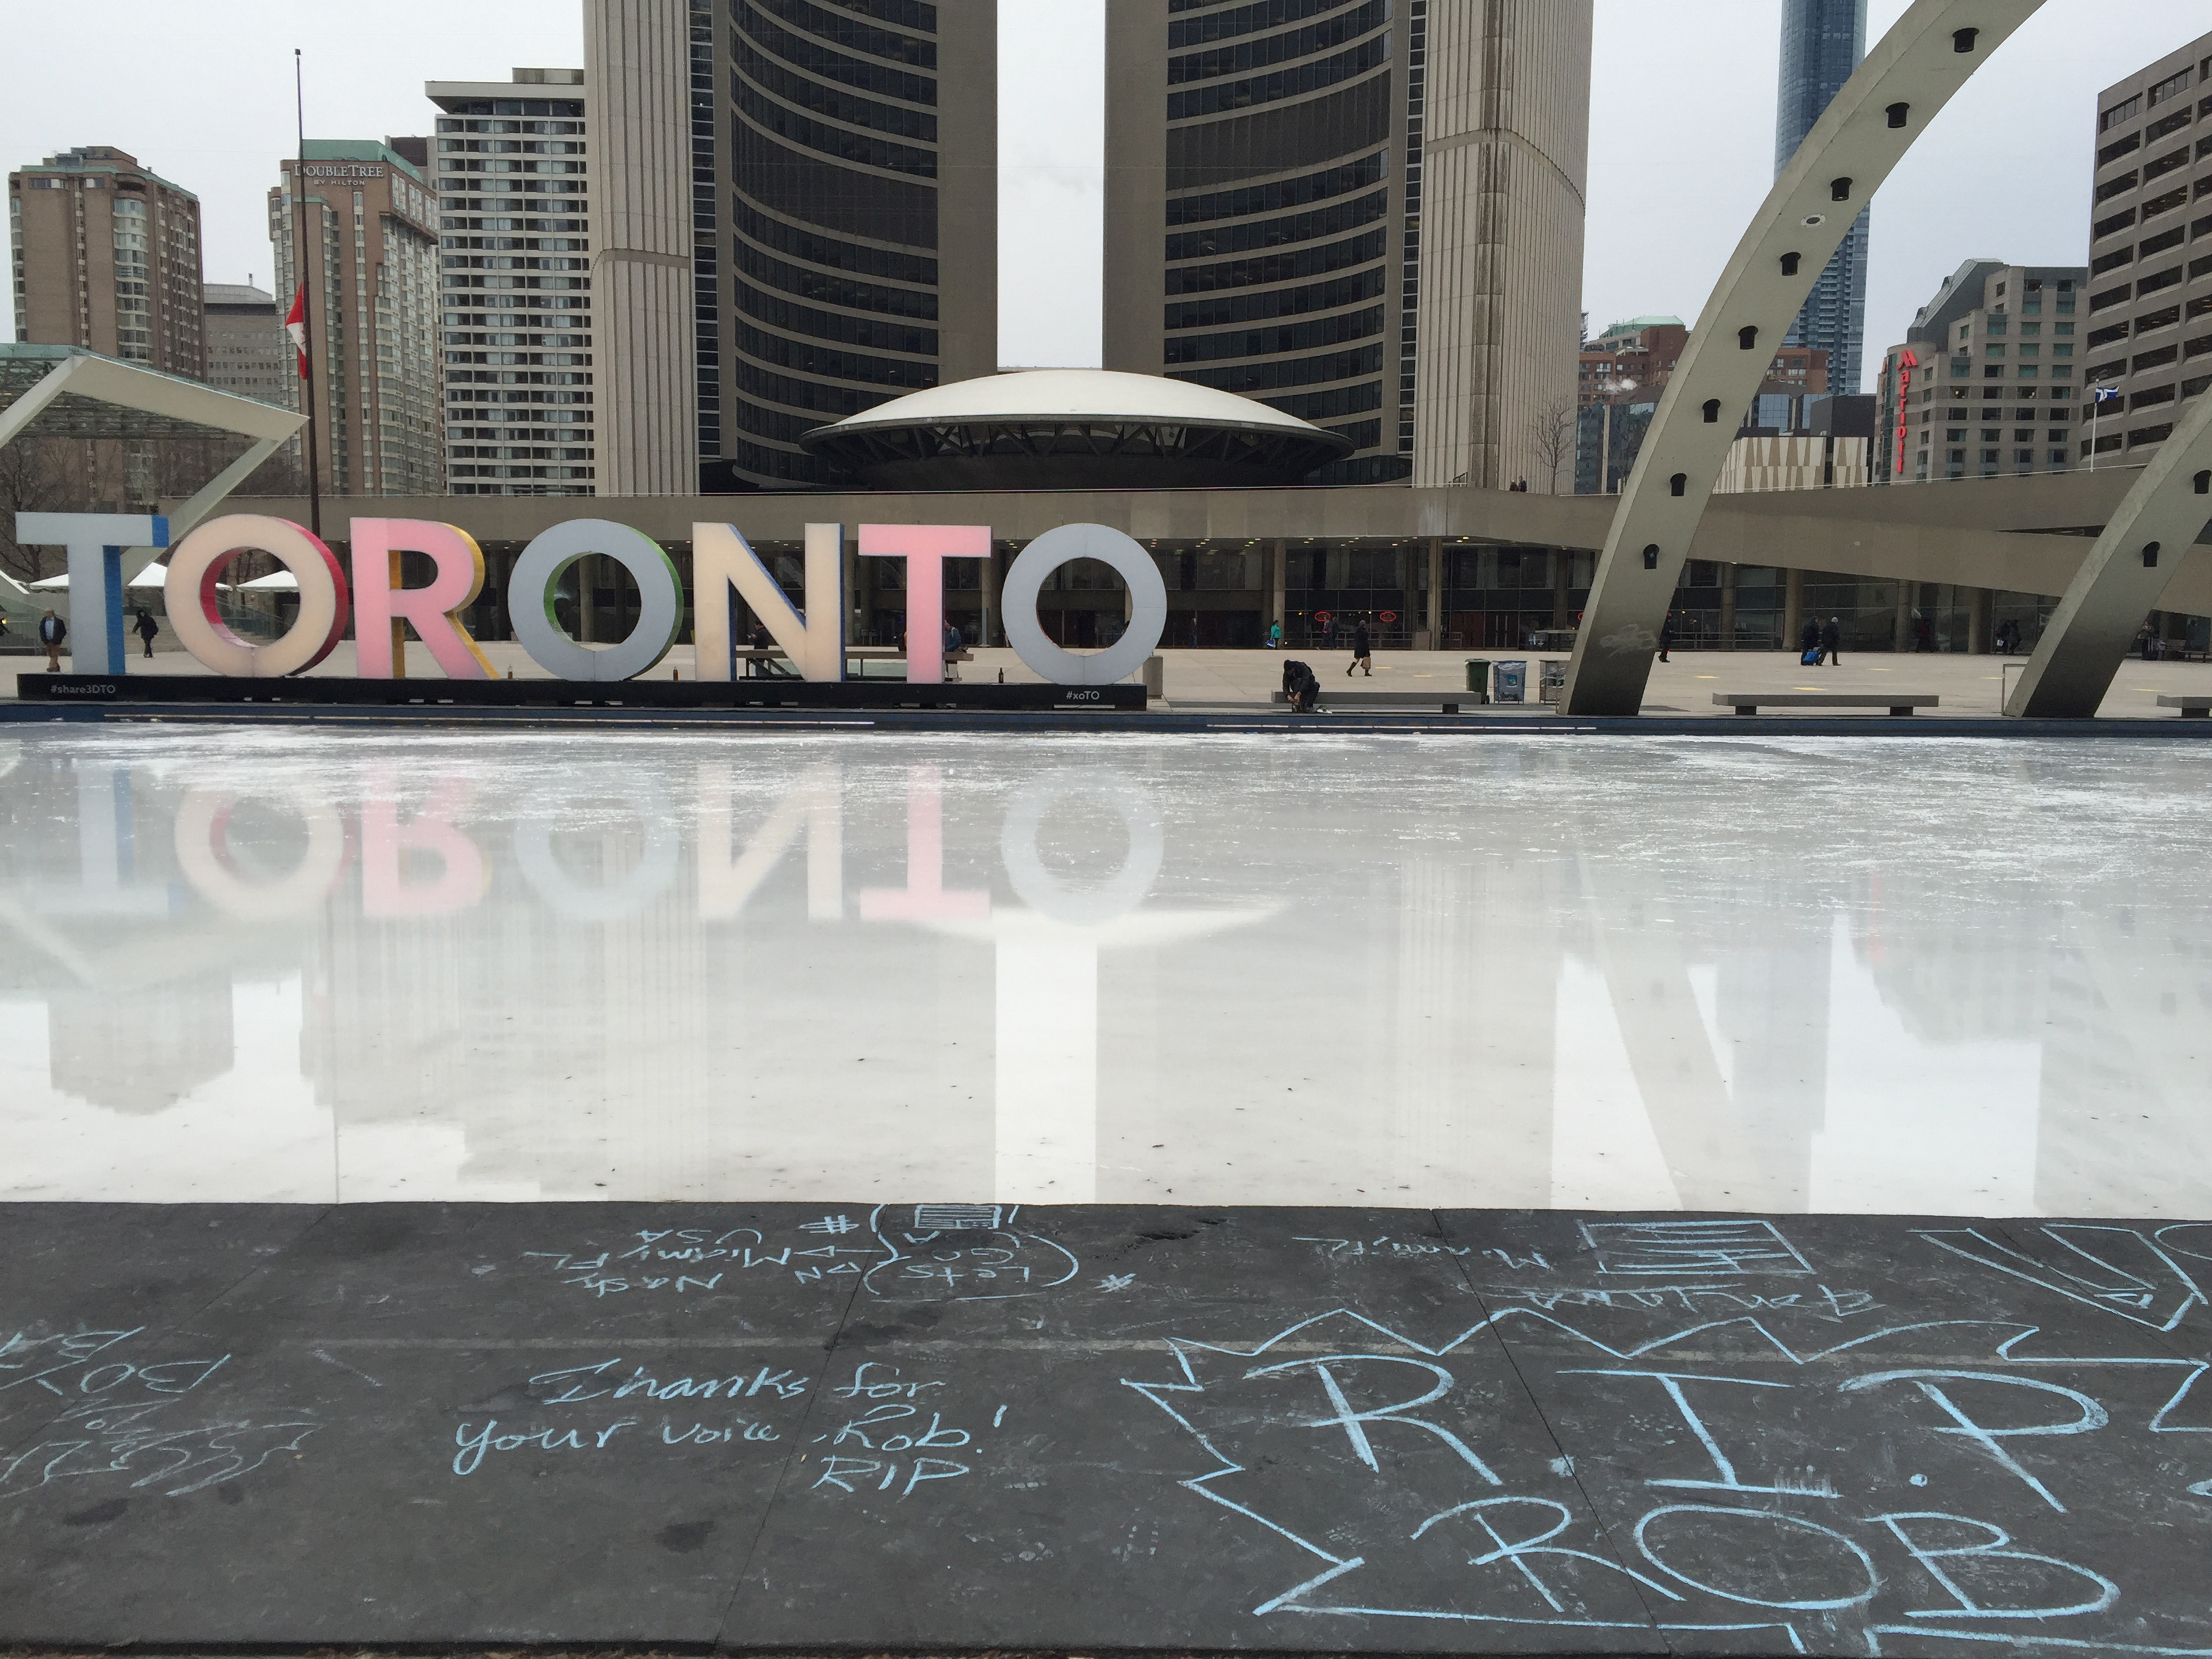 Rob Ford chalk memorial near Toronto sign at Nathan Phillips Square